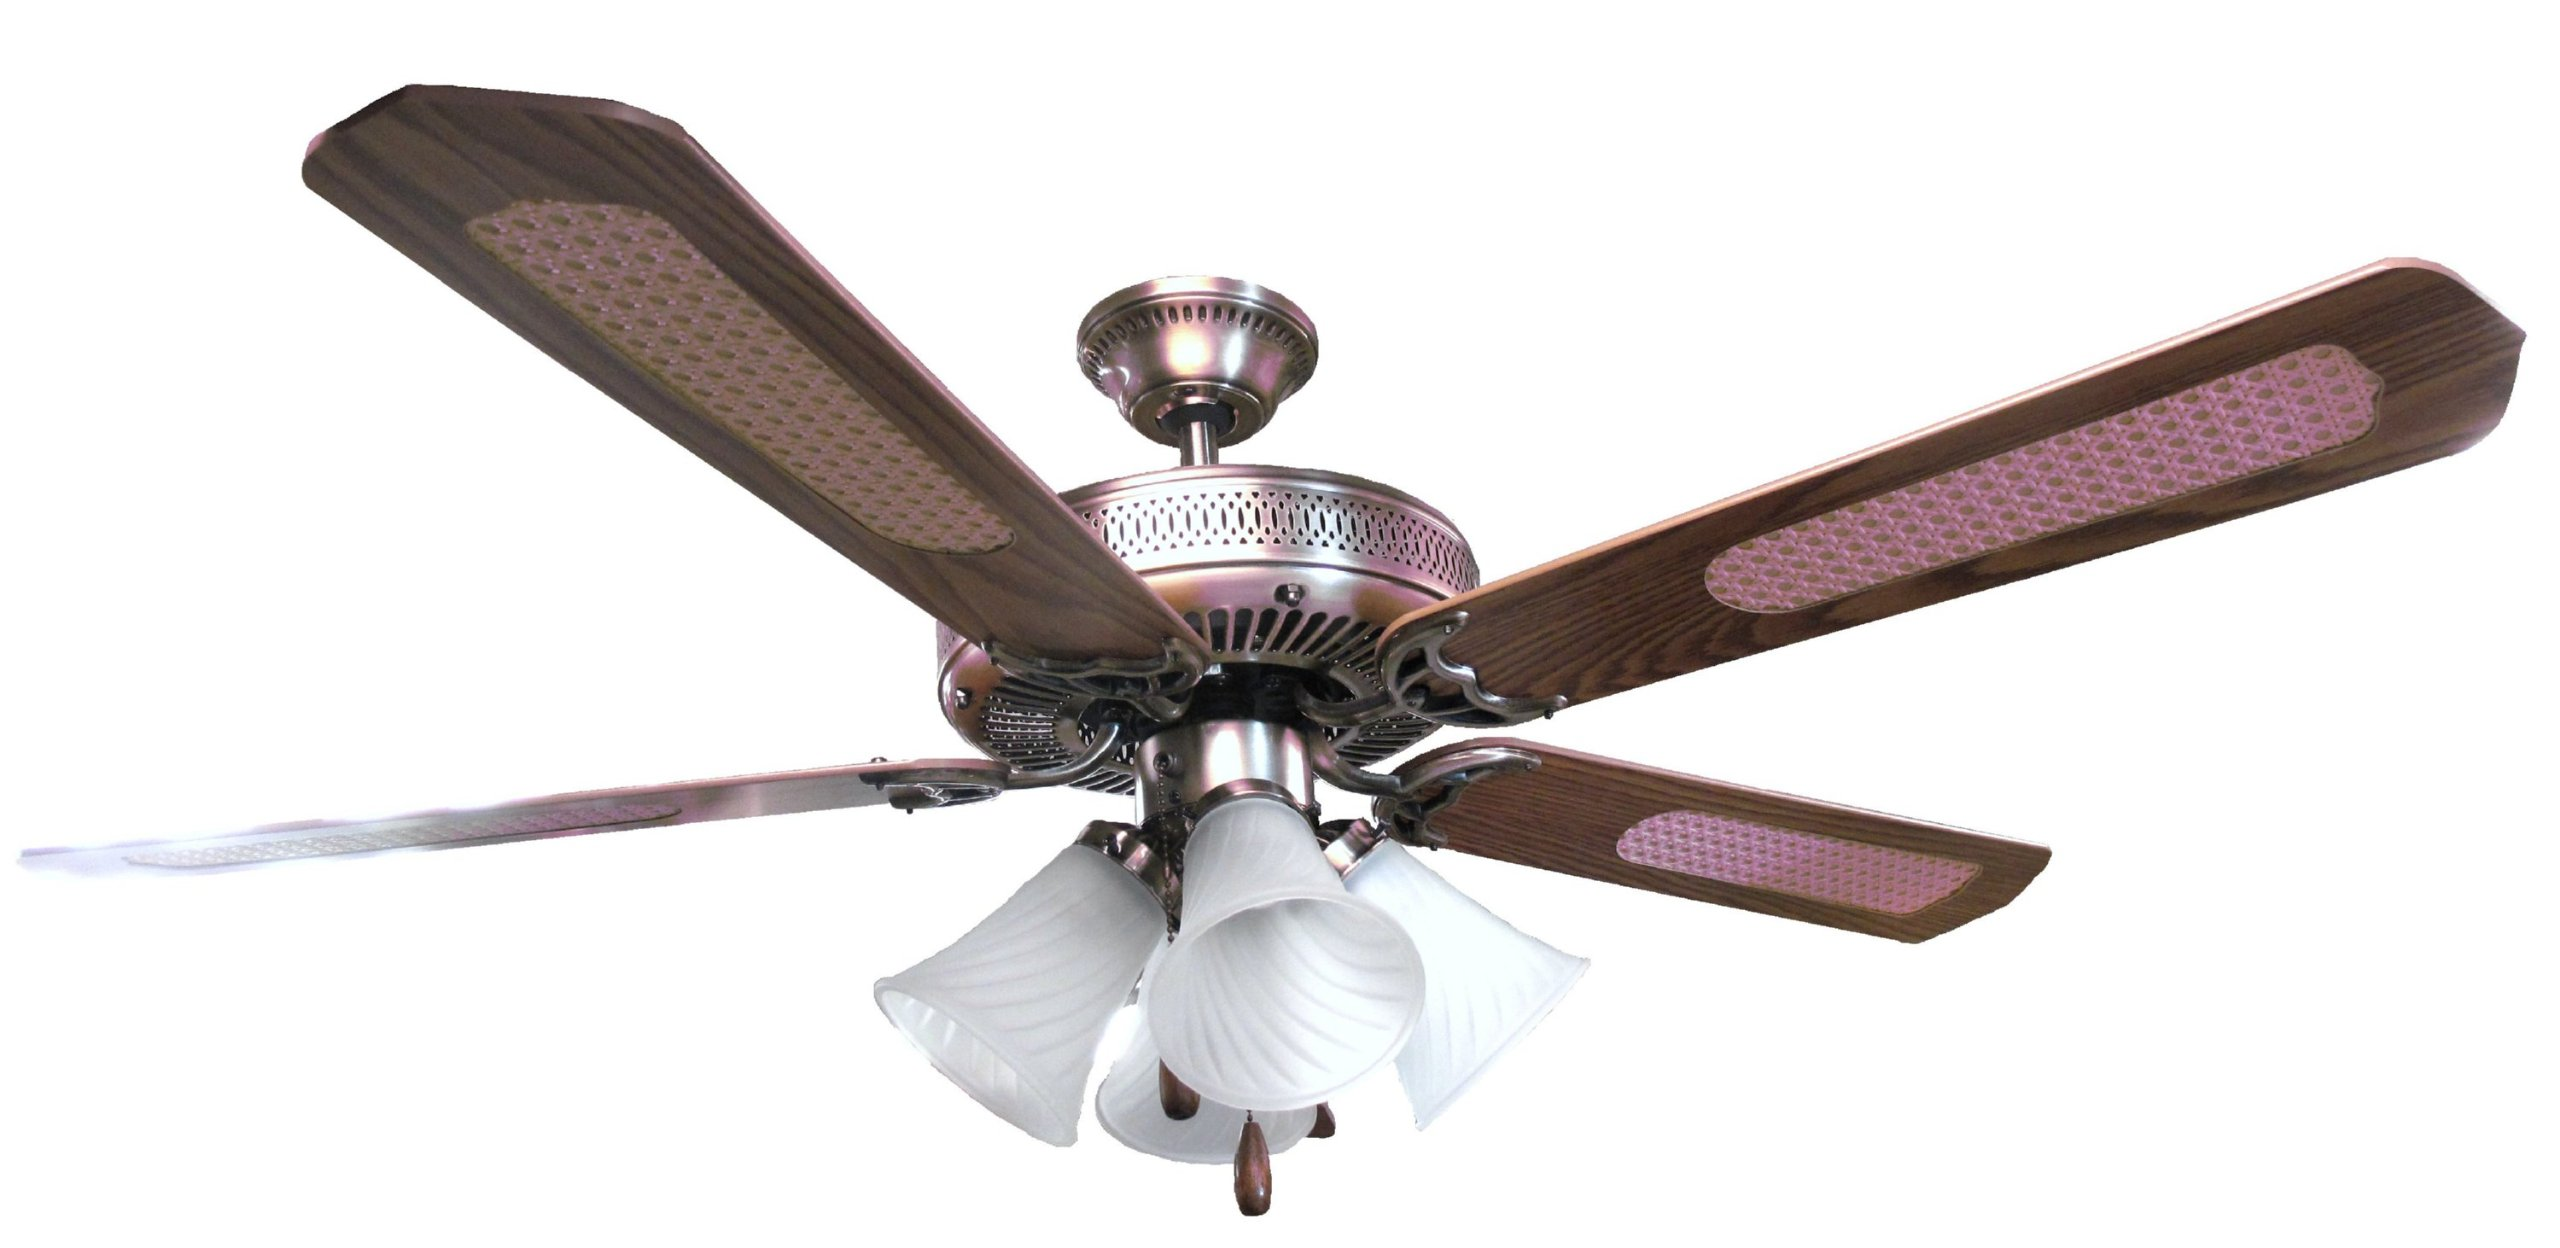 OVERSEAS USE ONLY Sakura SA5203AB 52'' Five Blade 220 Volt Ceiling Fan with Four Lights - Antique Brass Style (220V will not work in USA)